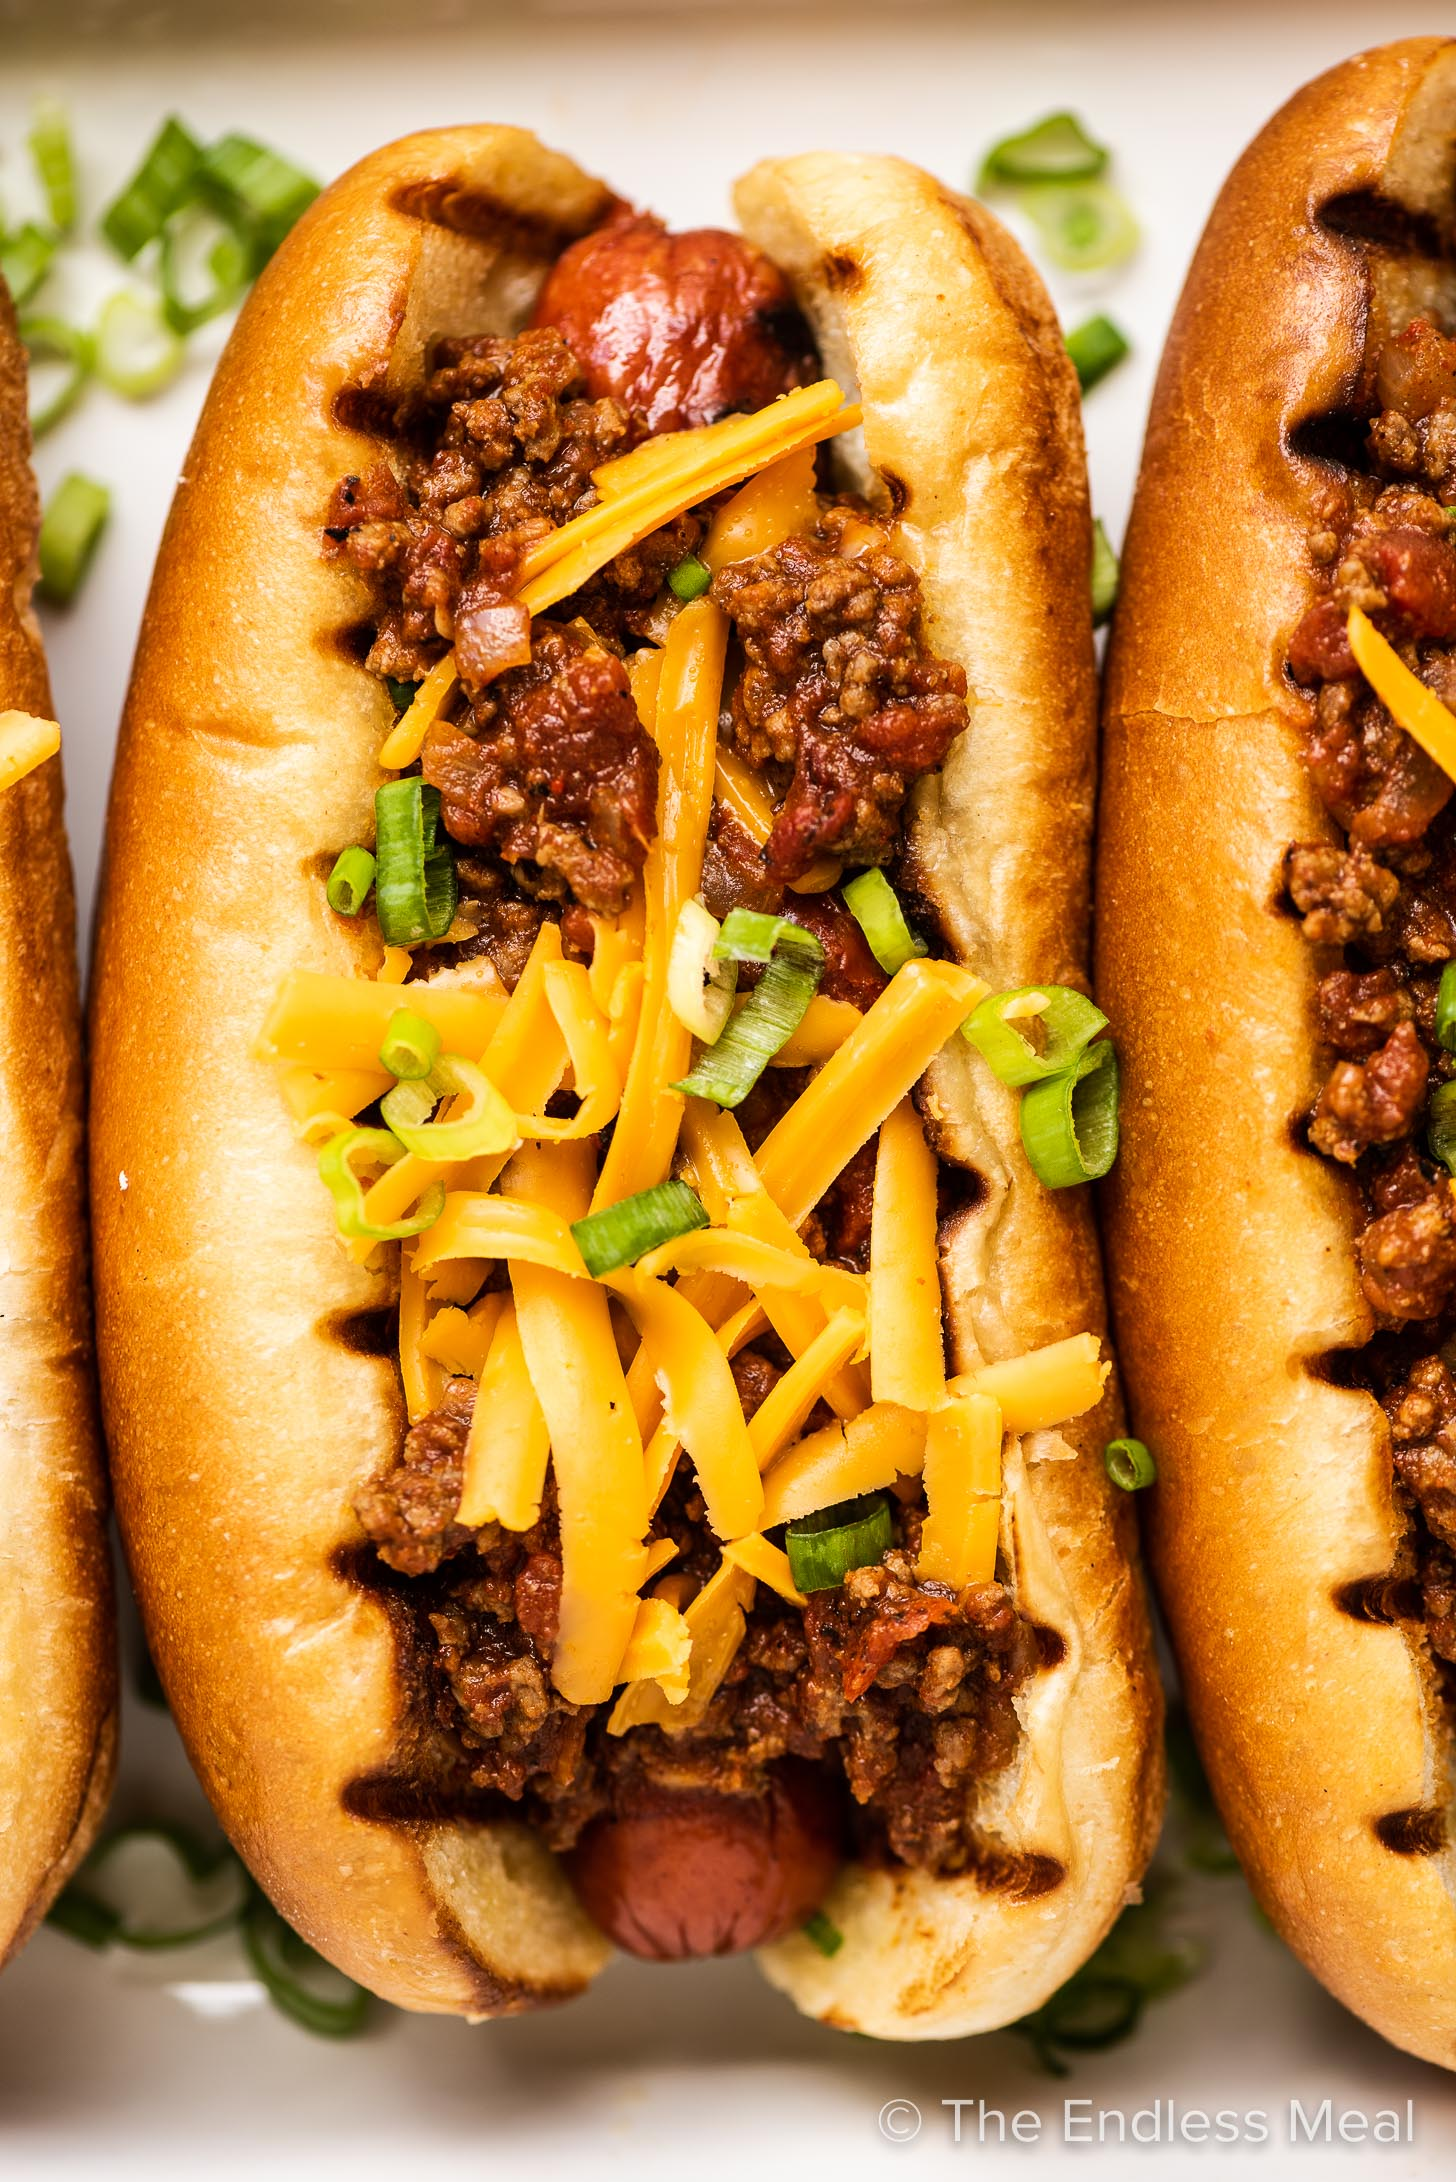 A close up of a chili cheese dog.